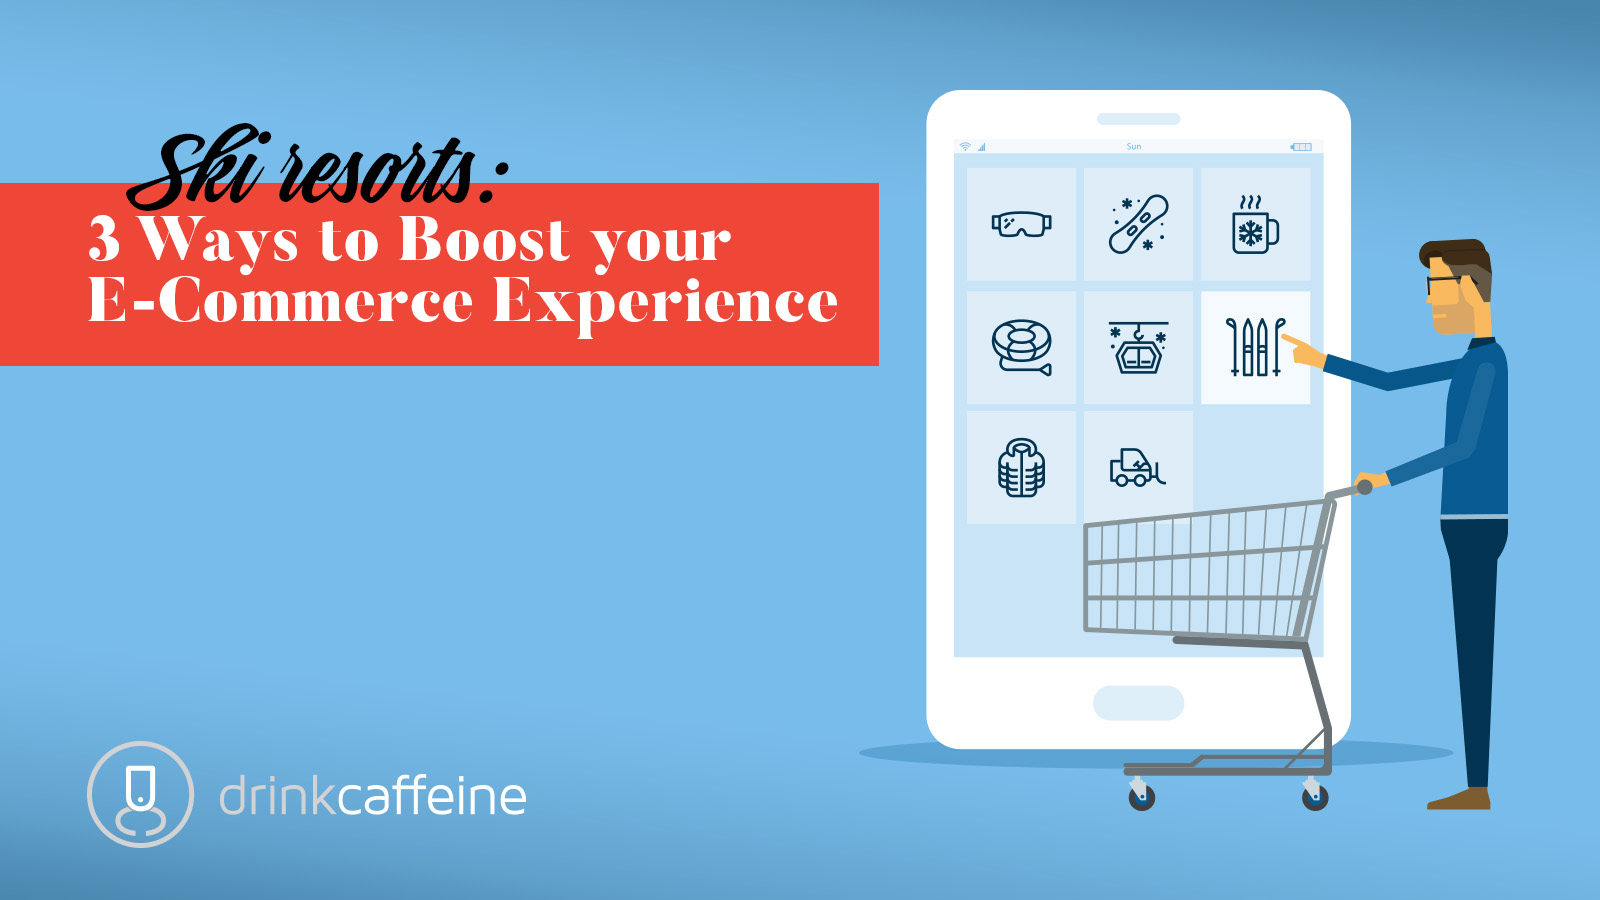 Grooming the ecommerce experience blog image